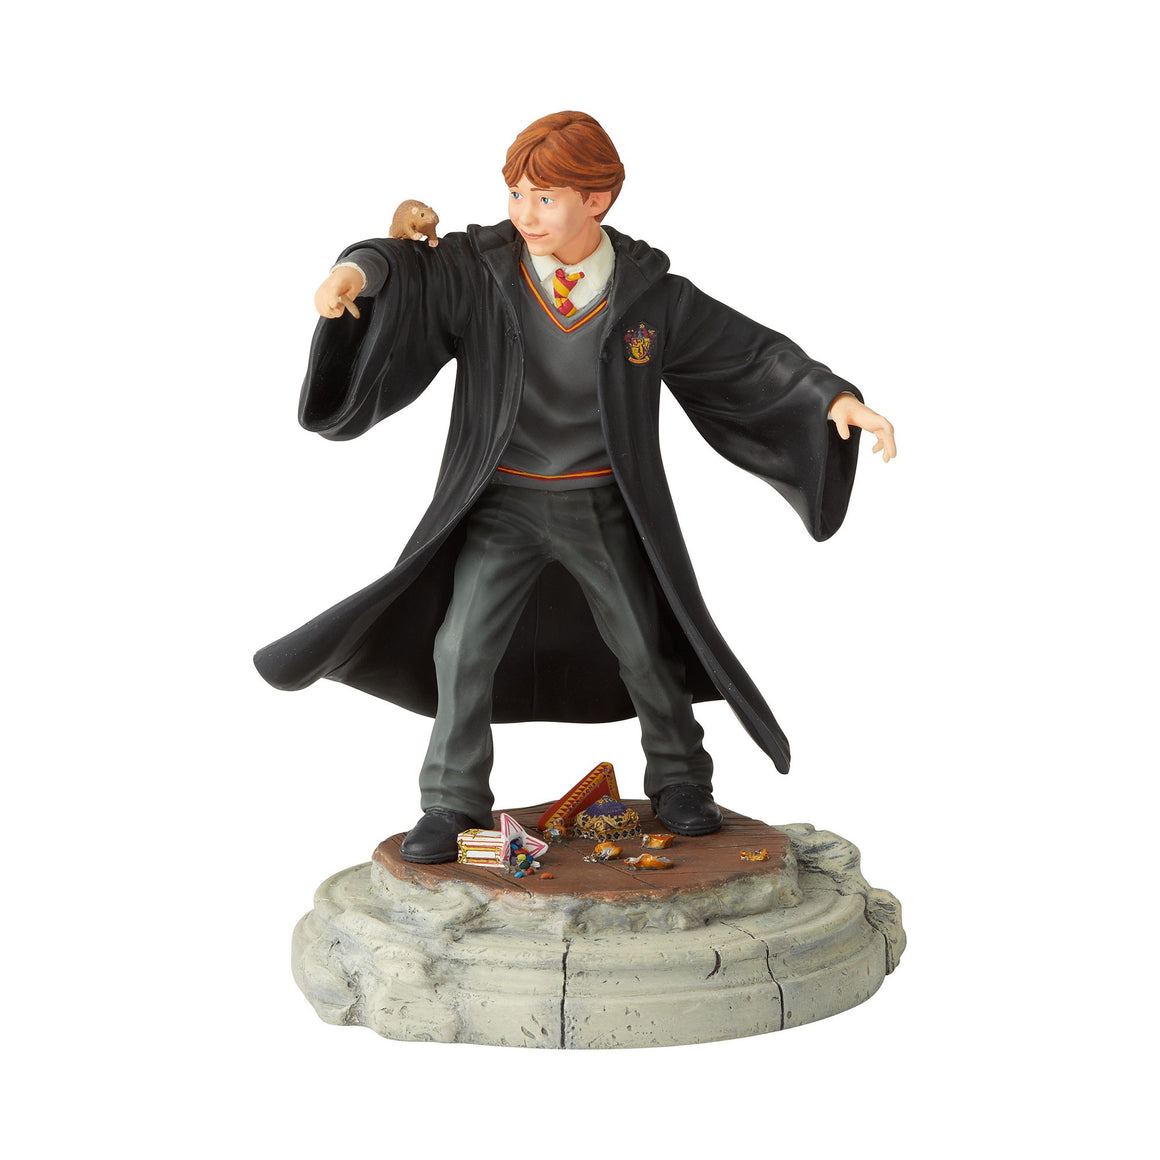 Ron Weasley Year One Figurine - The Wizarding World of Harry Potter